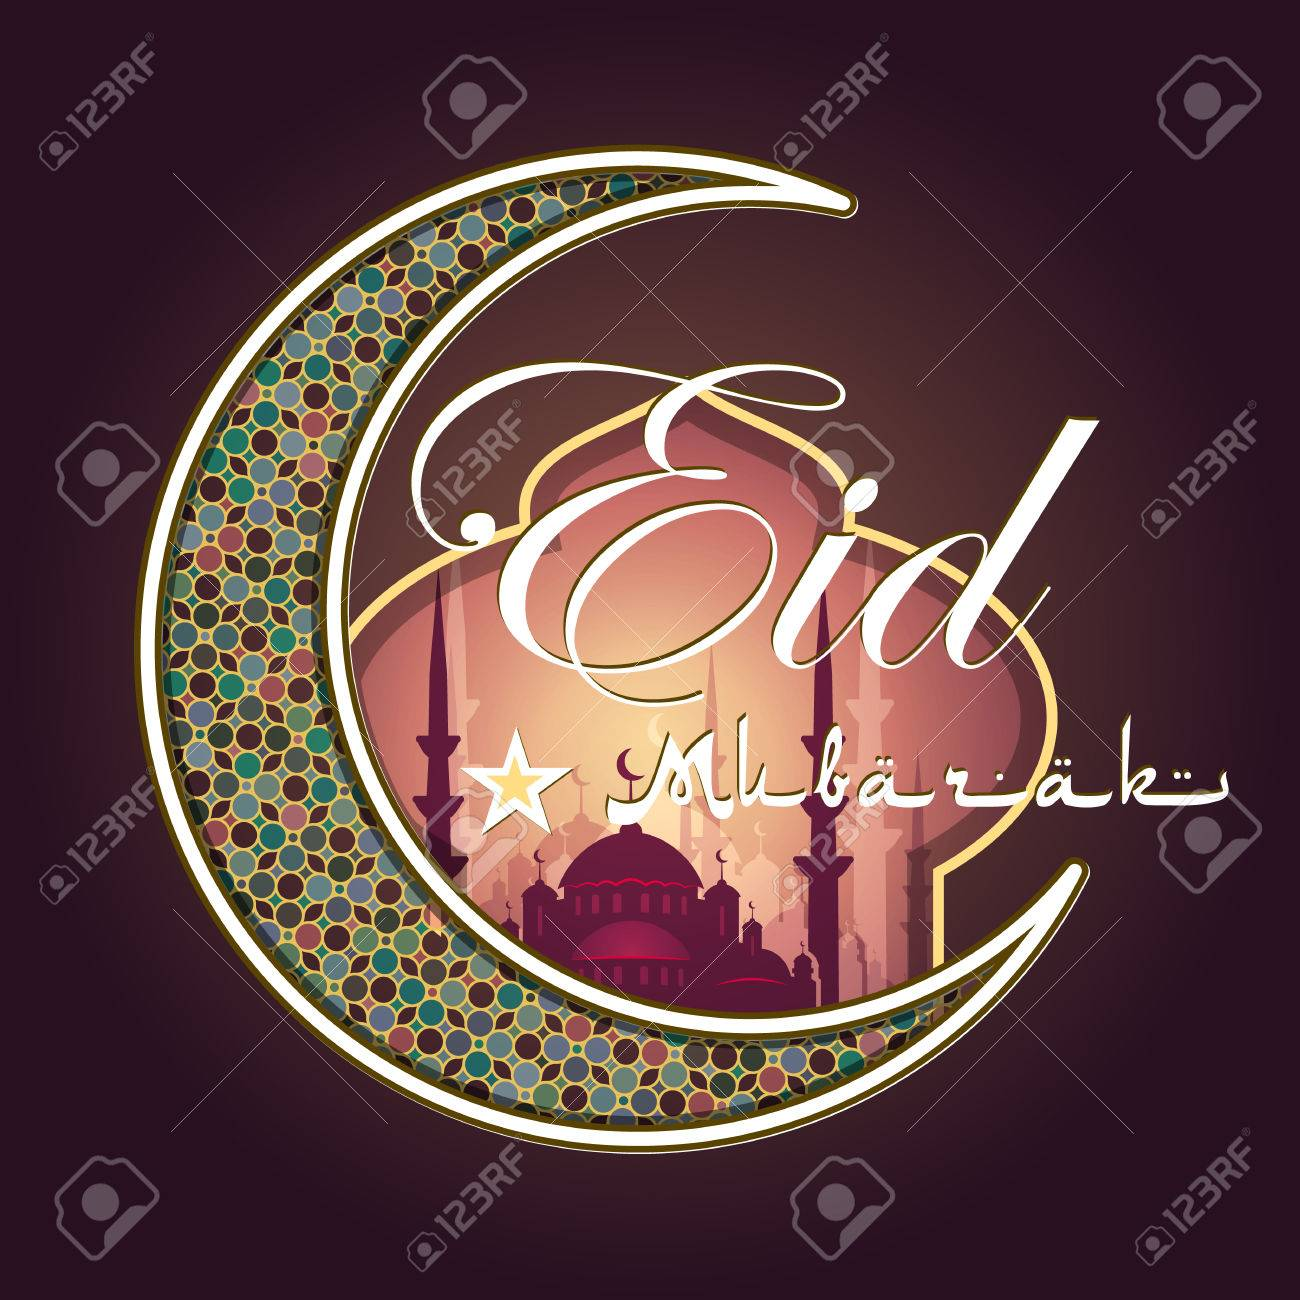 Amazing Happy Eid Al-Fitr Feast - 59282128-calligraphy-of-arabic-text-eid-al-fitr-feast-of-breaking-the-fast-holiday-greeting-card-in-retro-sty  Pictures_106224 .jpg